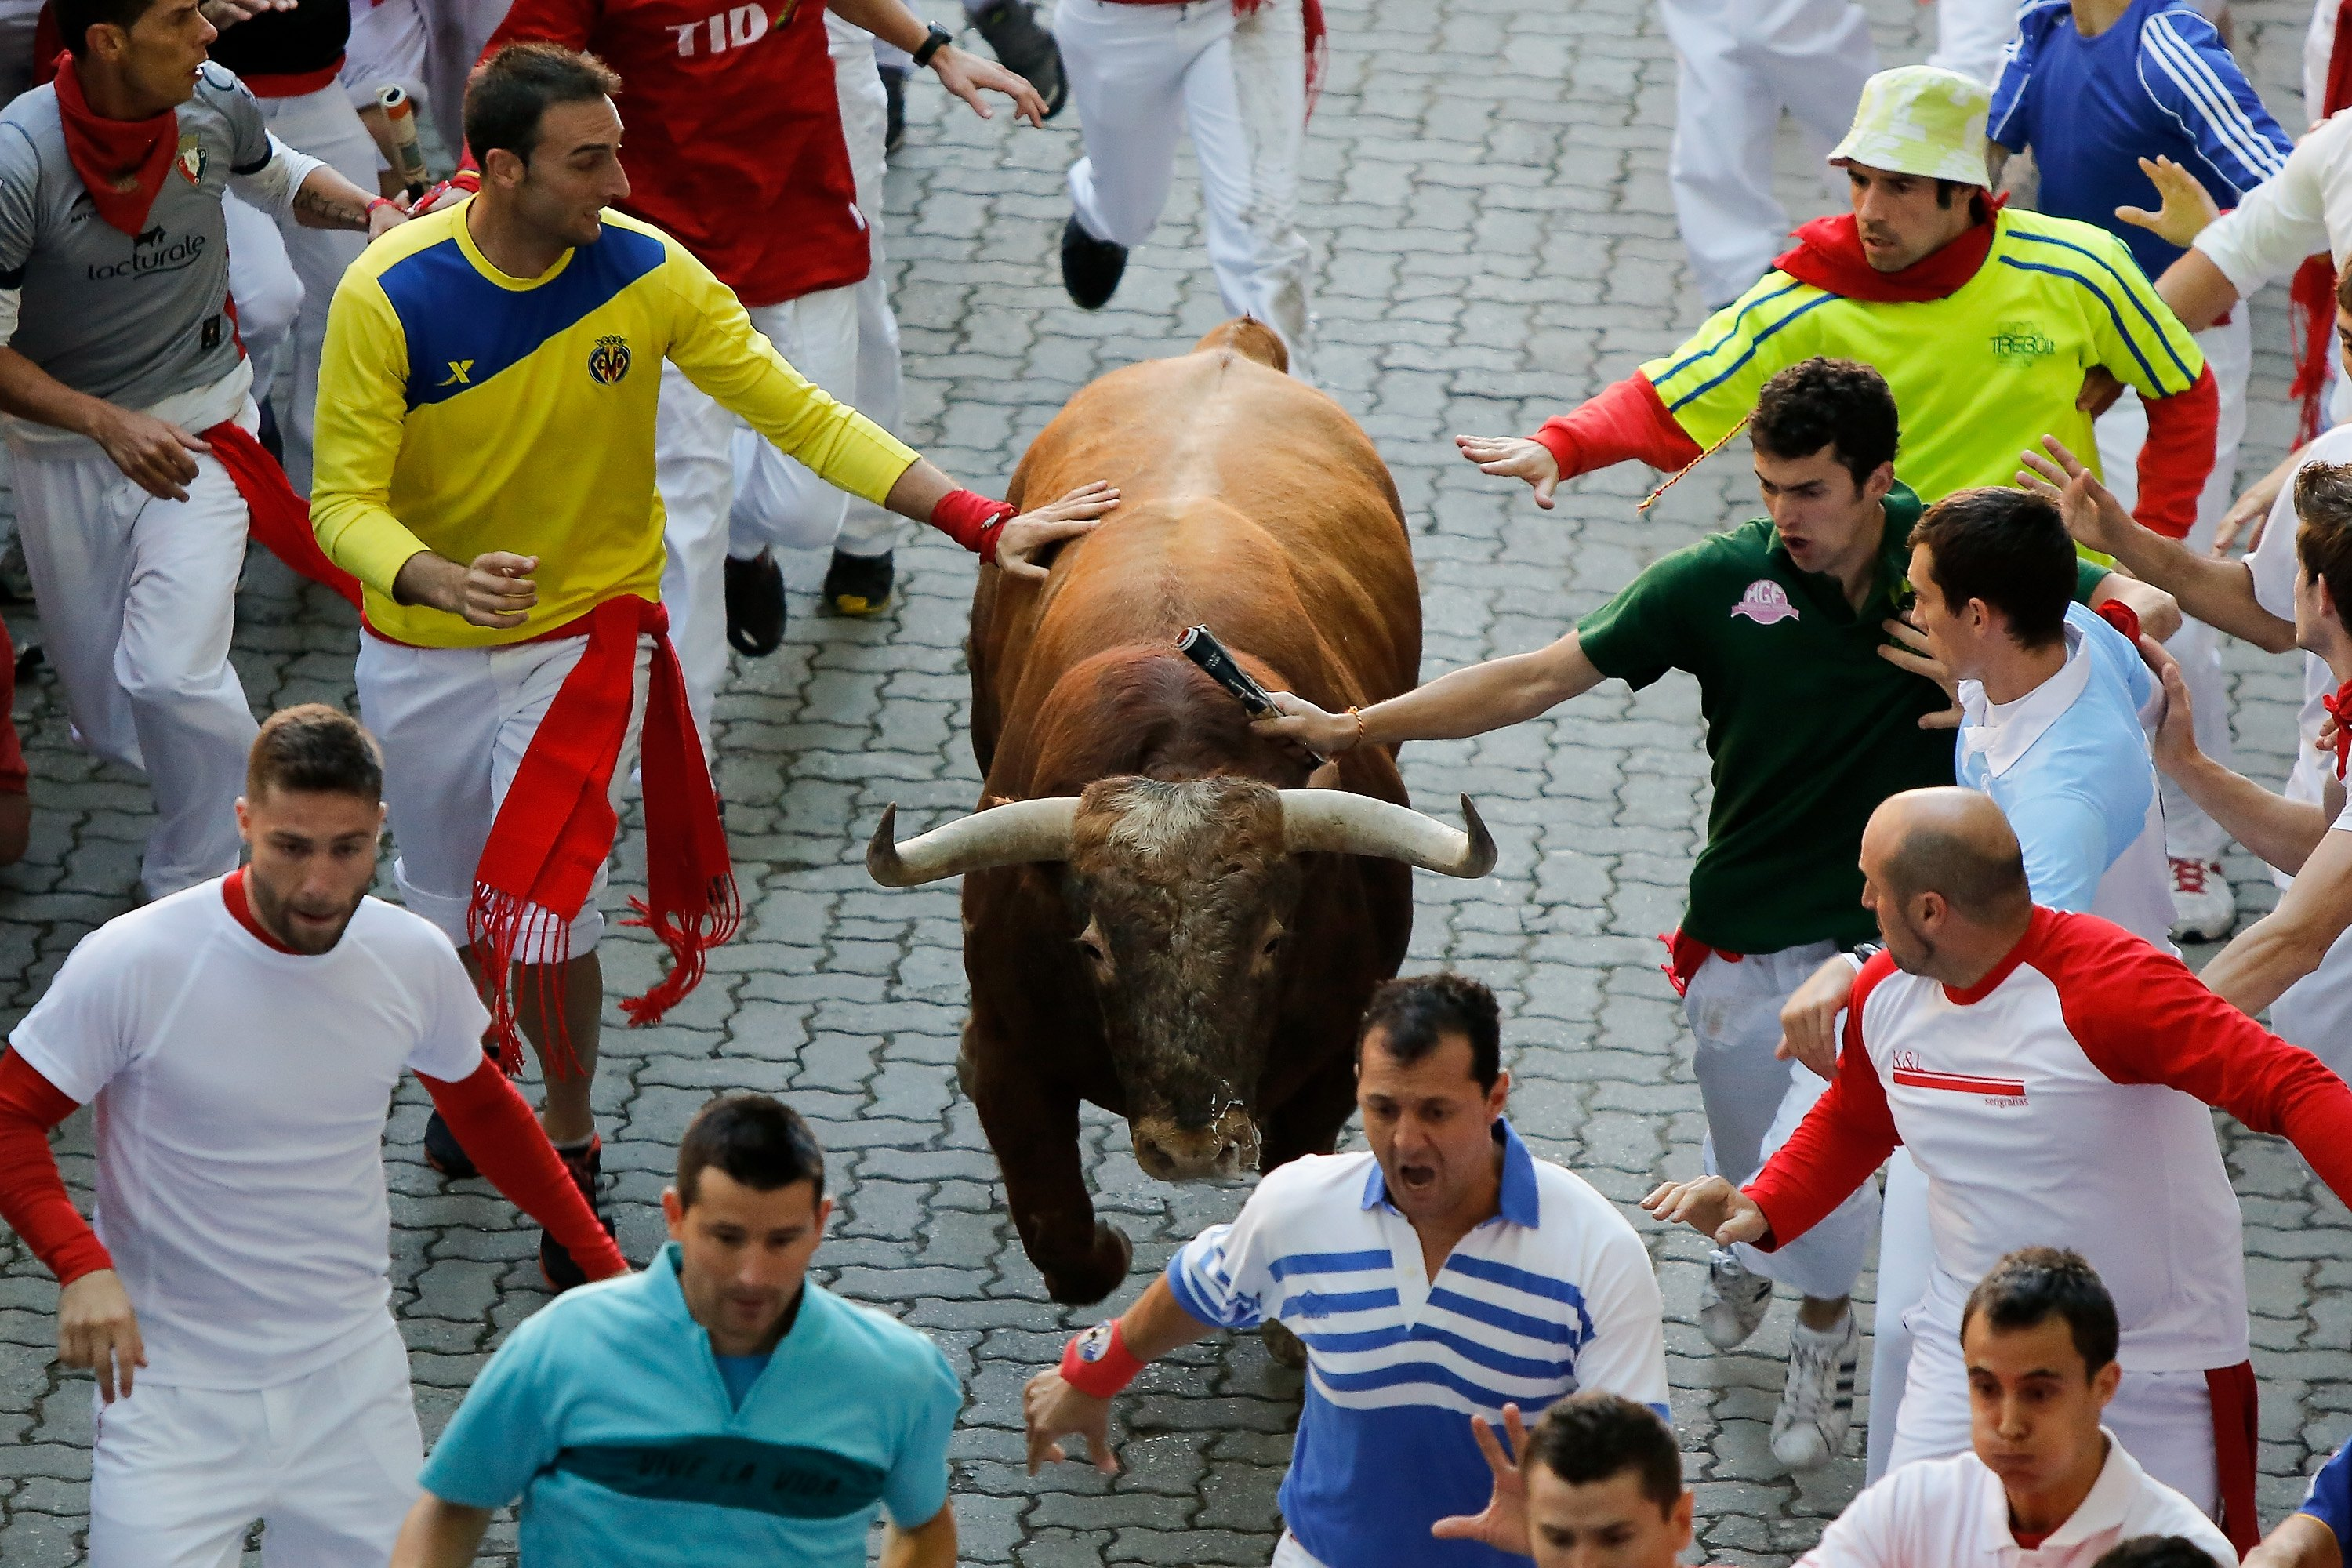 Spaniards run with a bull instead of working